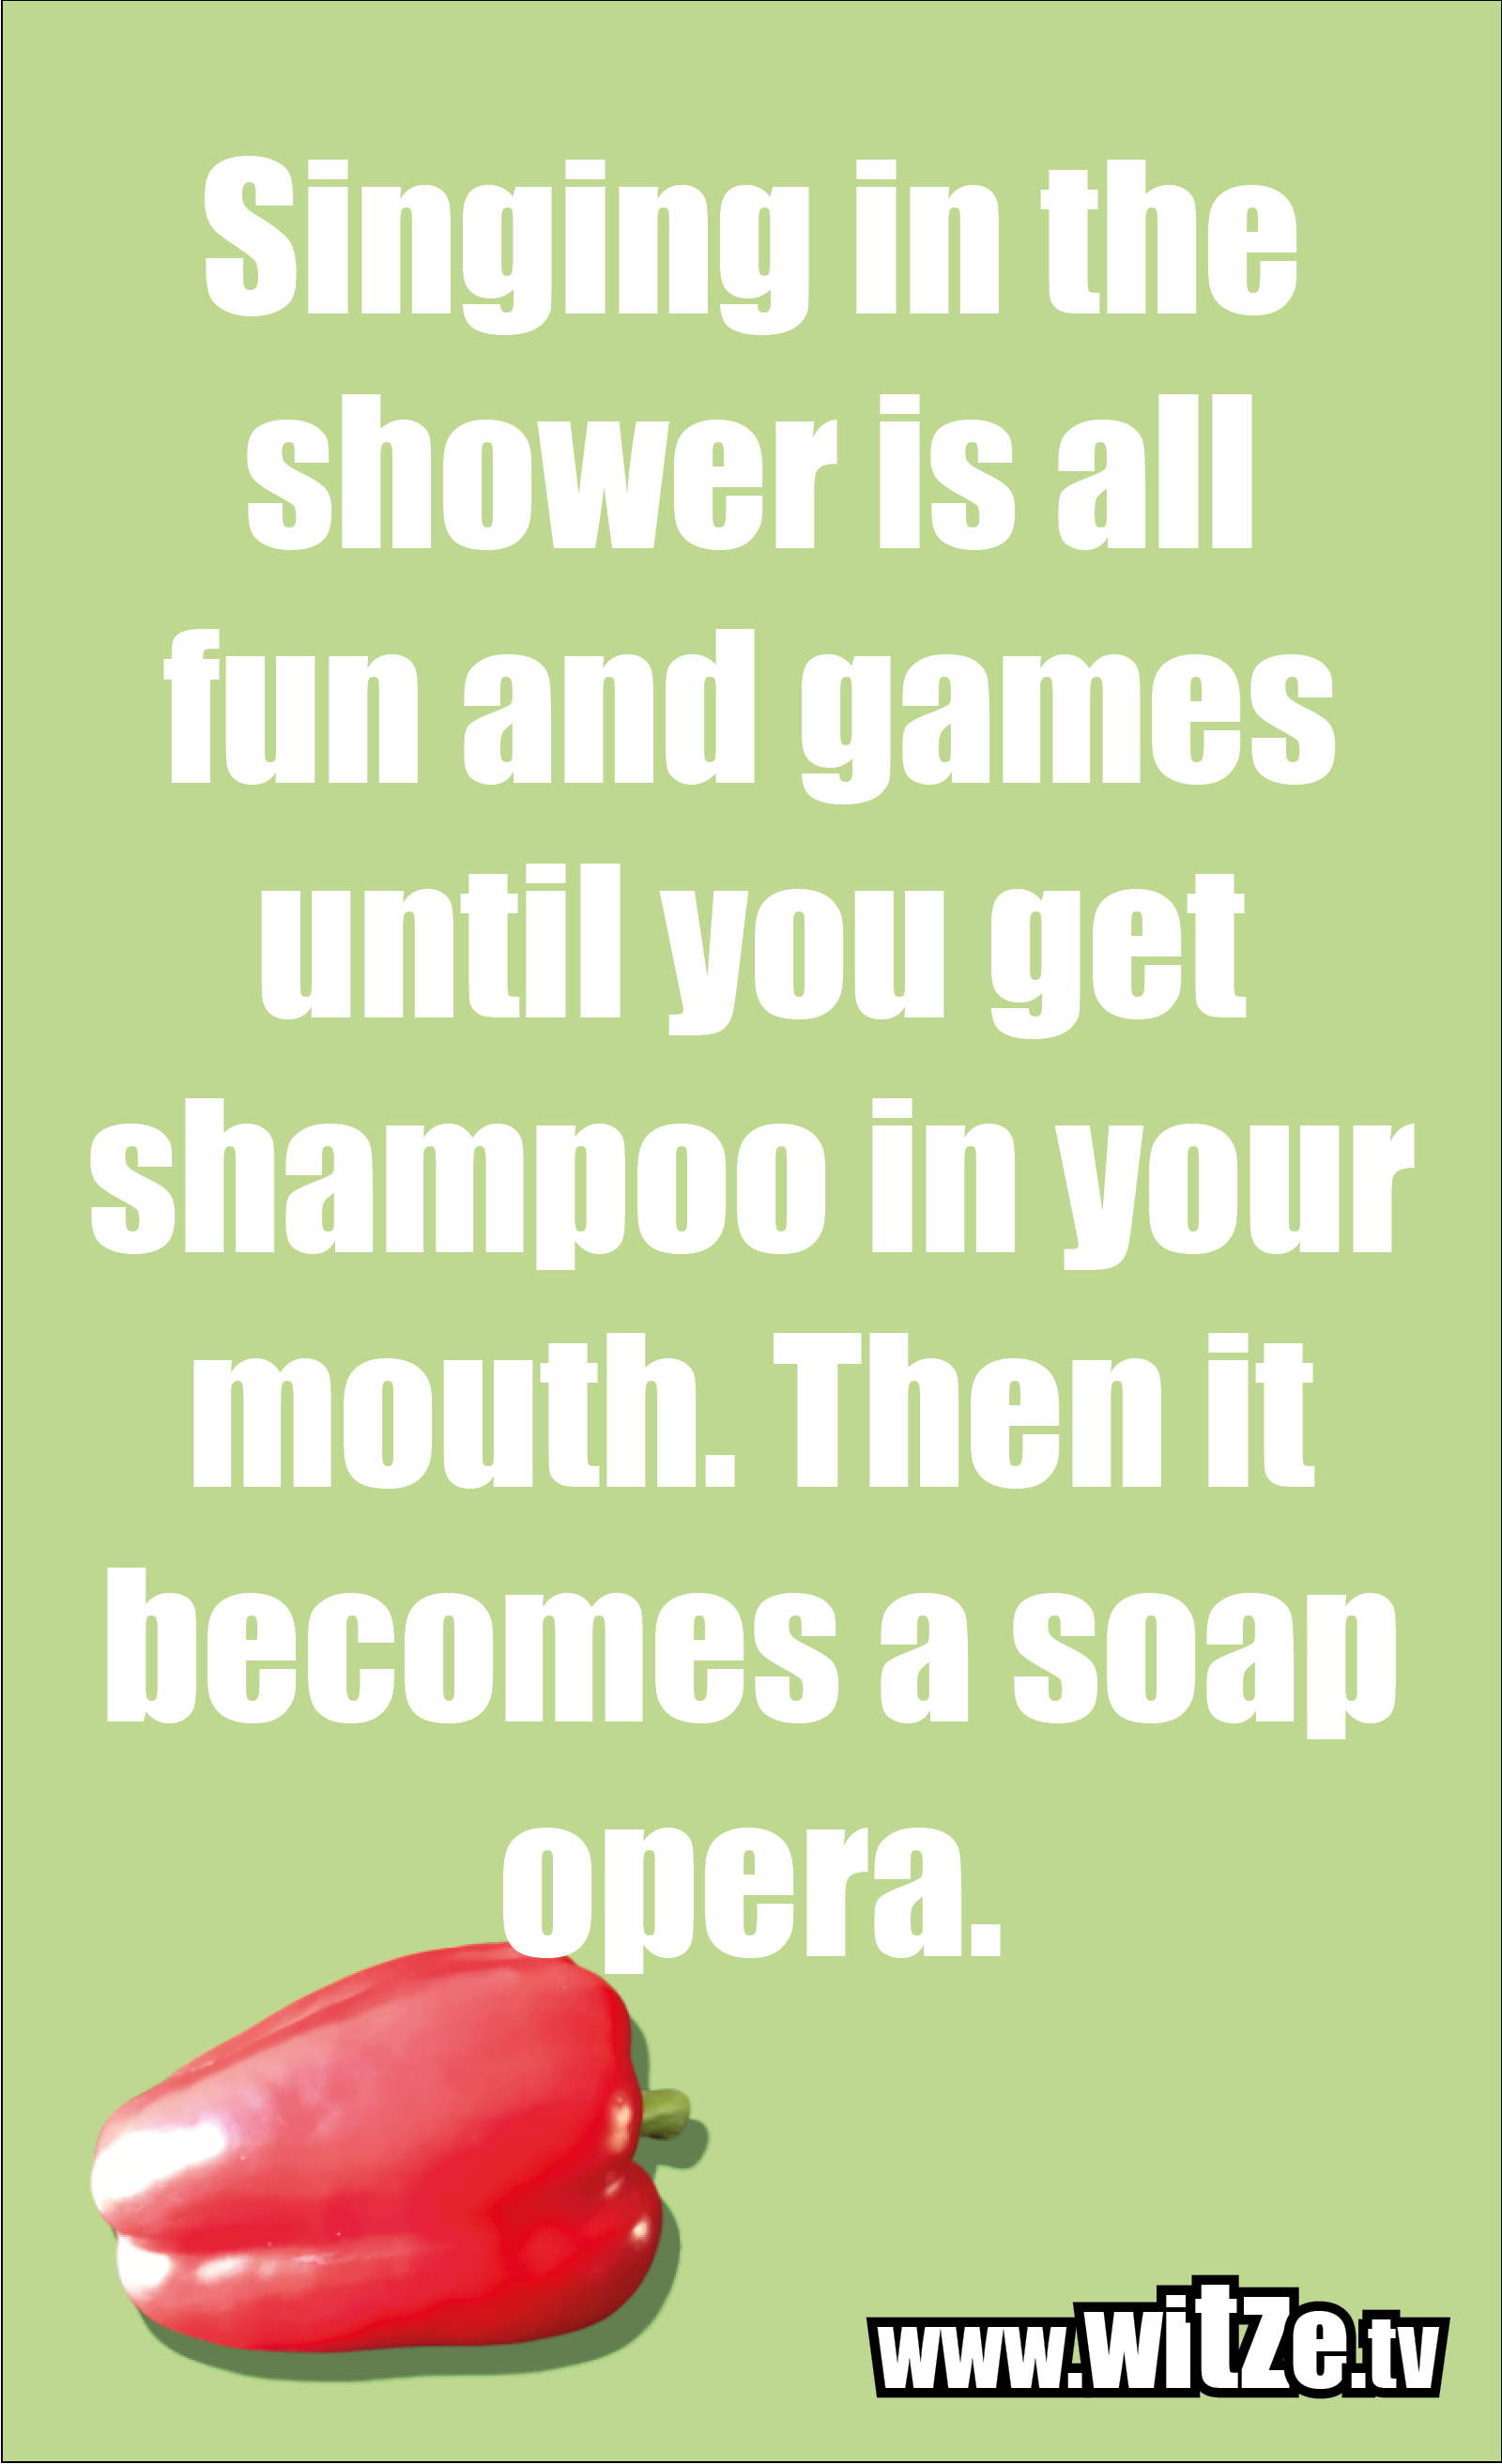 Funny sayings… Singing in the shower is all fun and games until you get shampoo in your mouth. Then it becomes a soap opera.